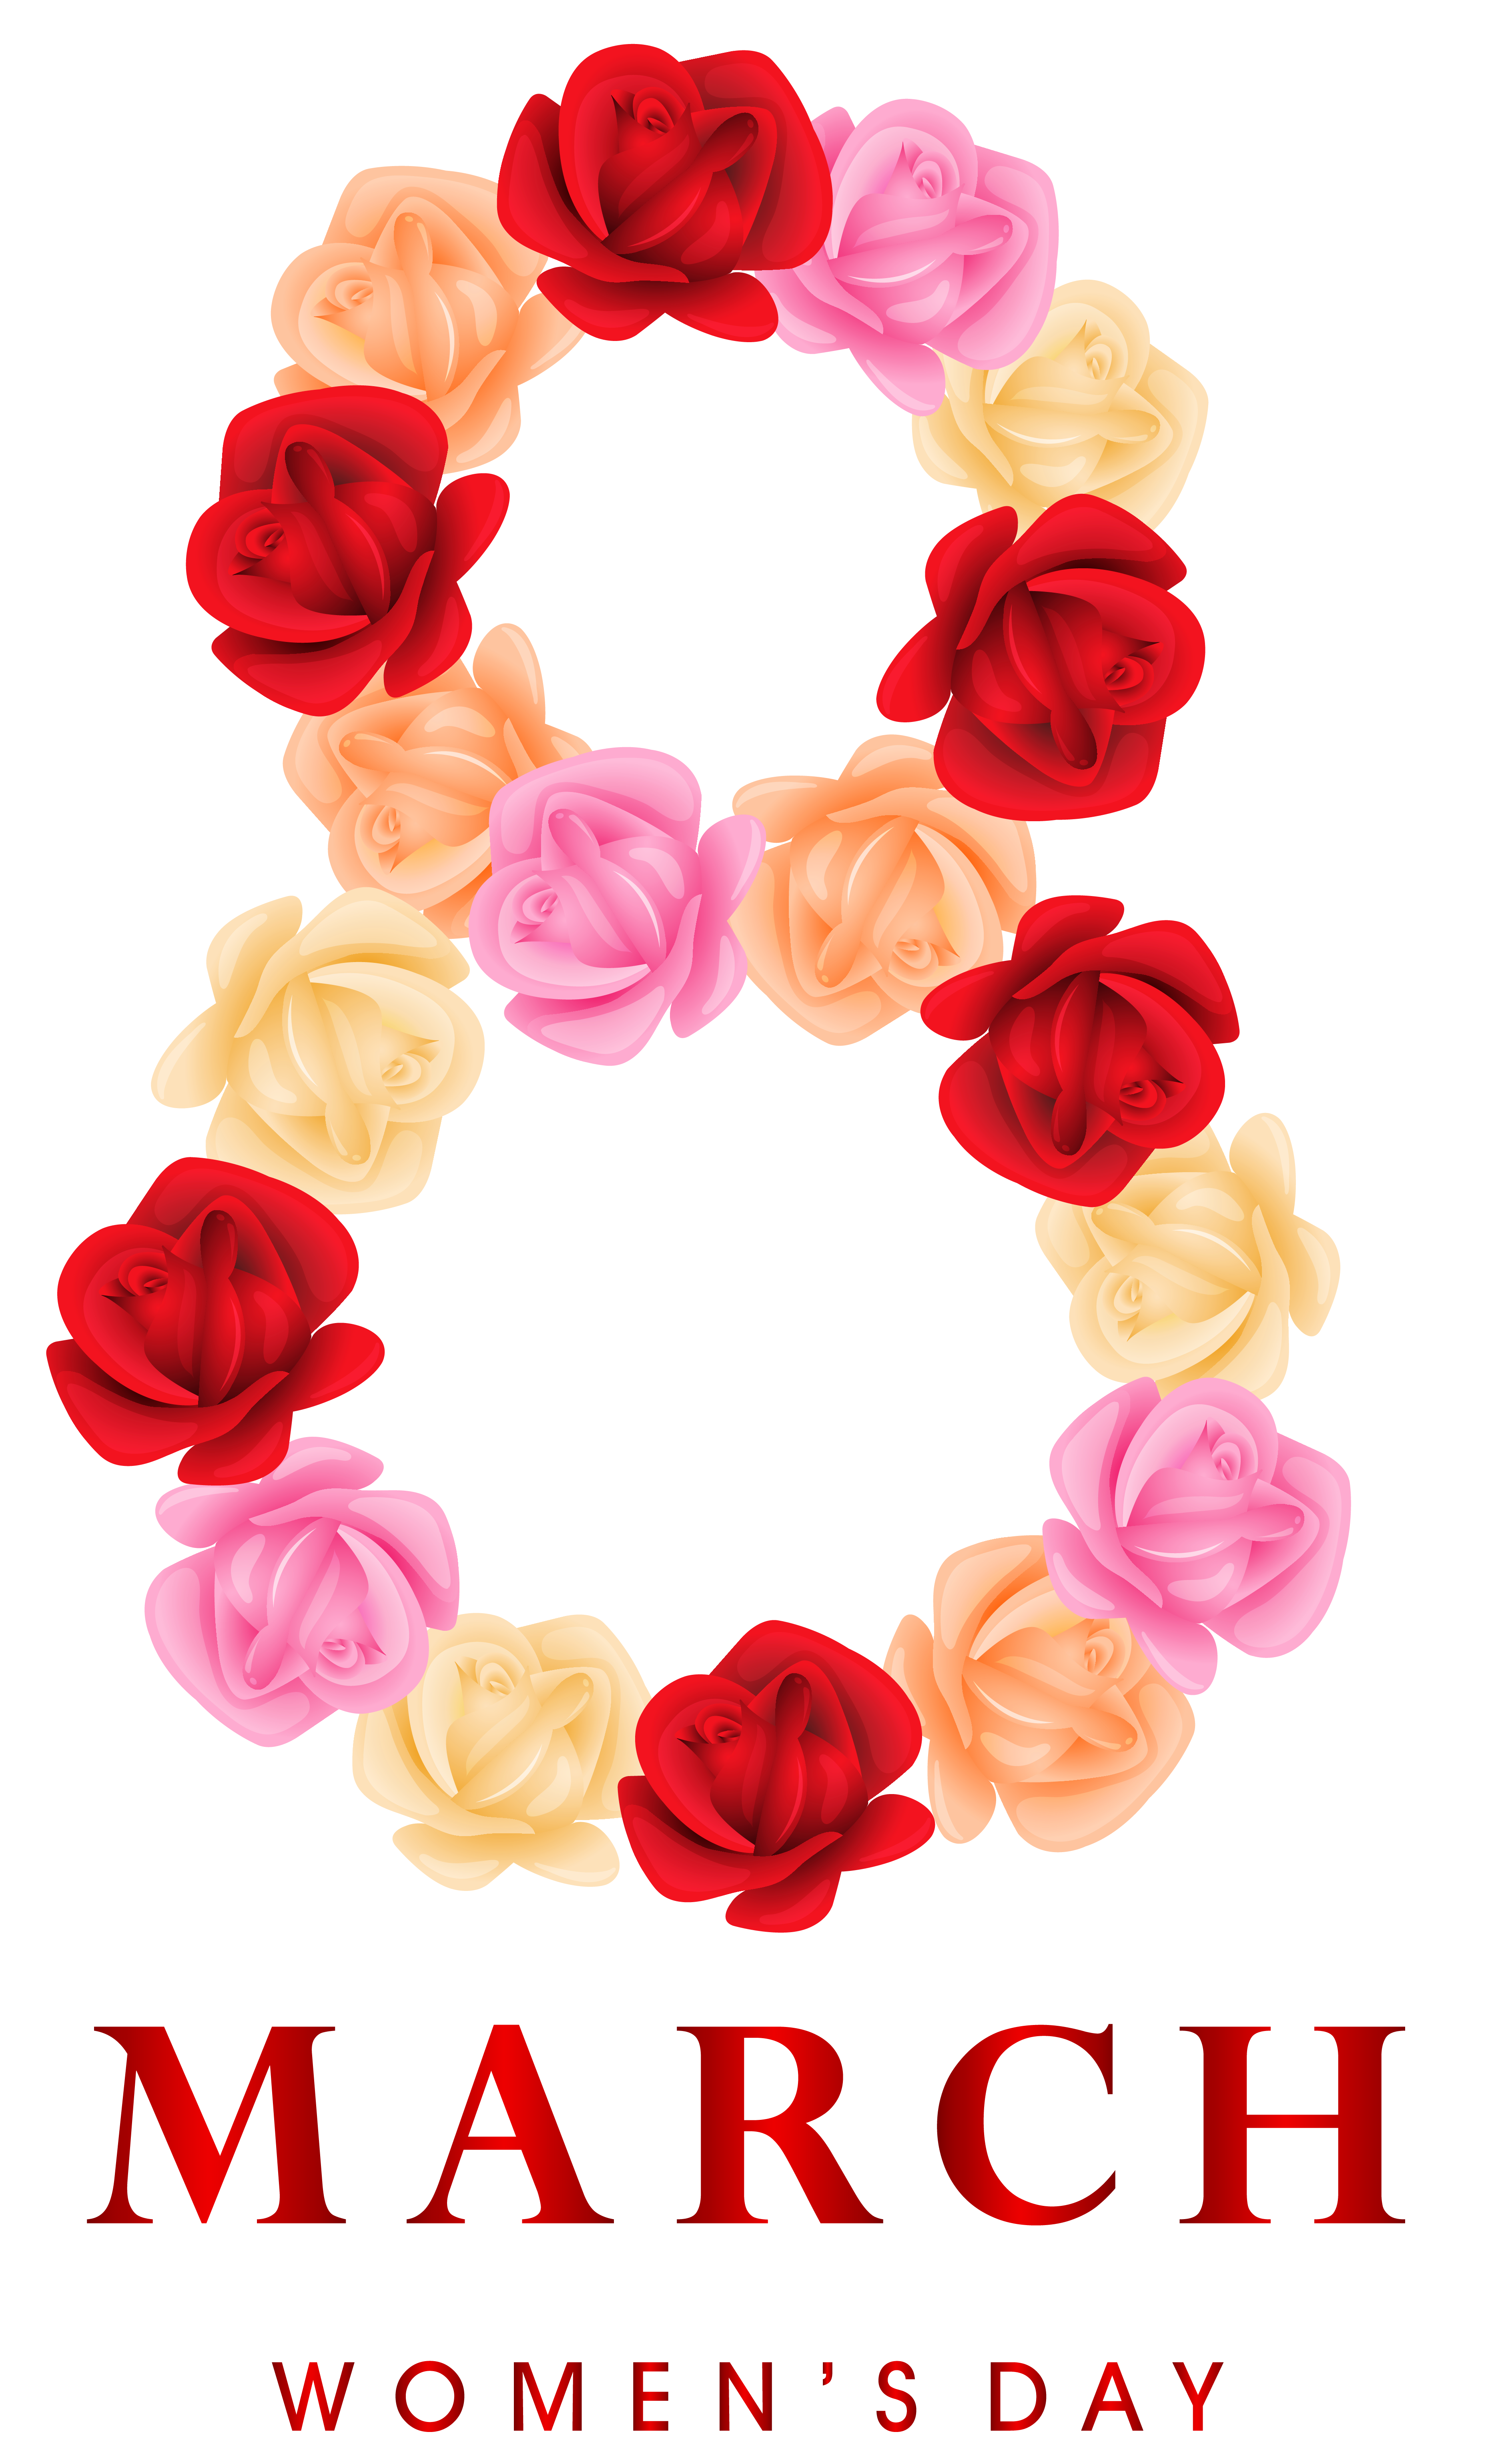 8 March Womens Day Png Clipart Image Women S Day 8 March 8th Of March 8 March Womens Day